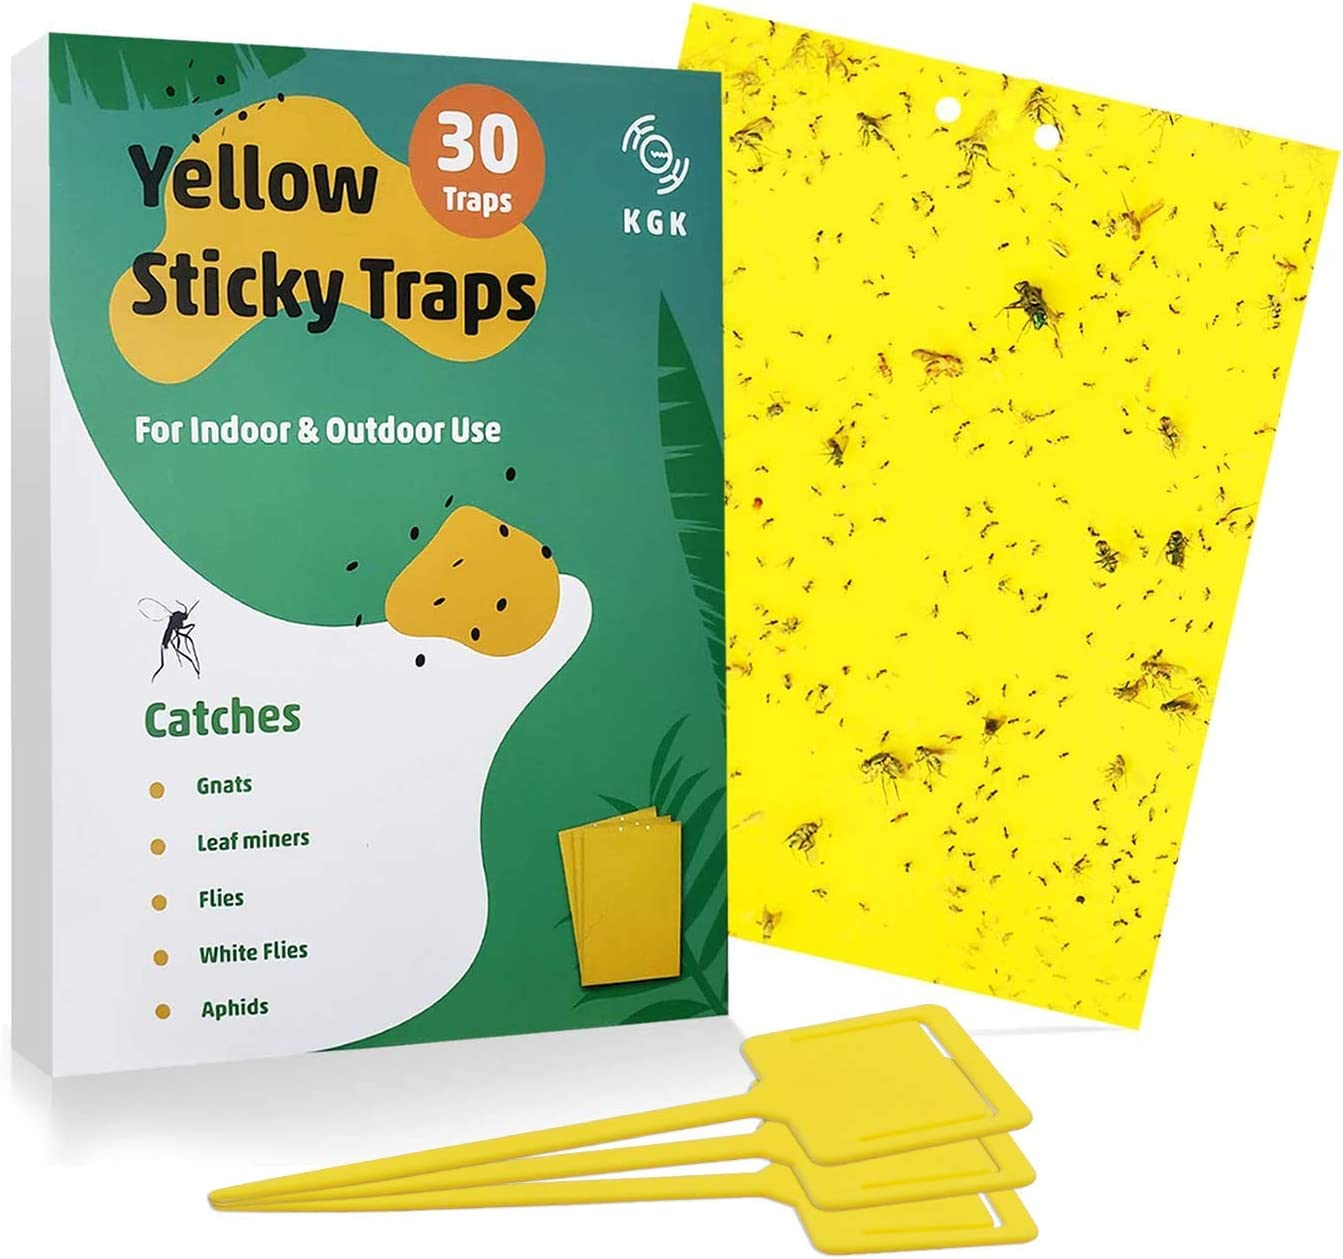 KGK Sticky Traps - 30 Pack, Dual-Sided Yellow Sticky Traps for Fungus Gnats, Aphids, and Other Flying Plant Insects - 6x8 Inches (Twist Ties and Holders Included)